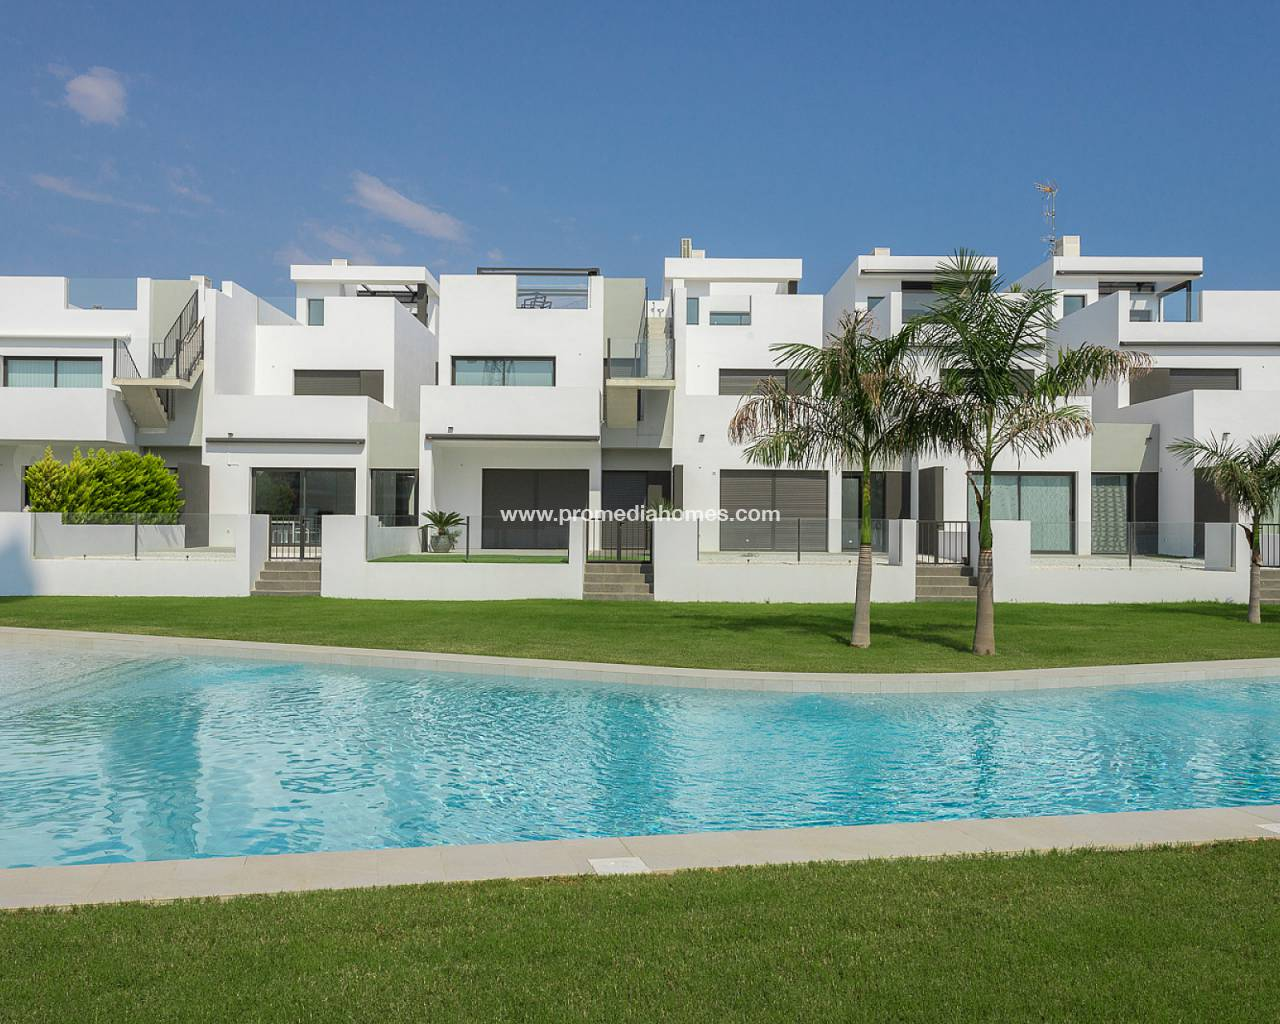 New Bungalow for sale in Pilar de la Horadada